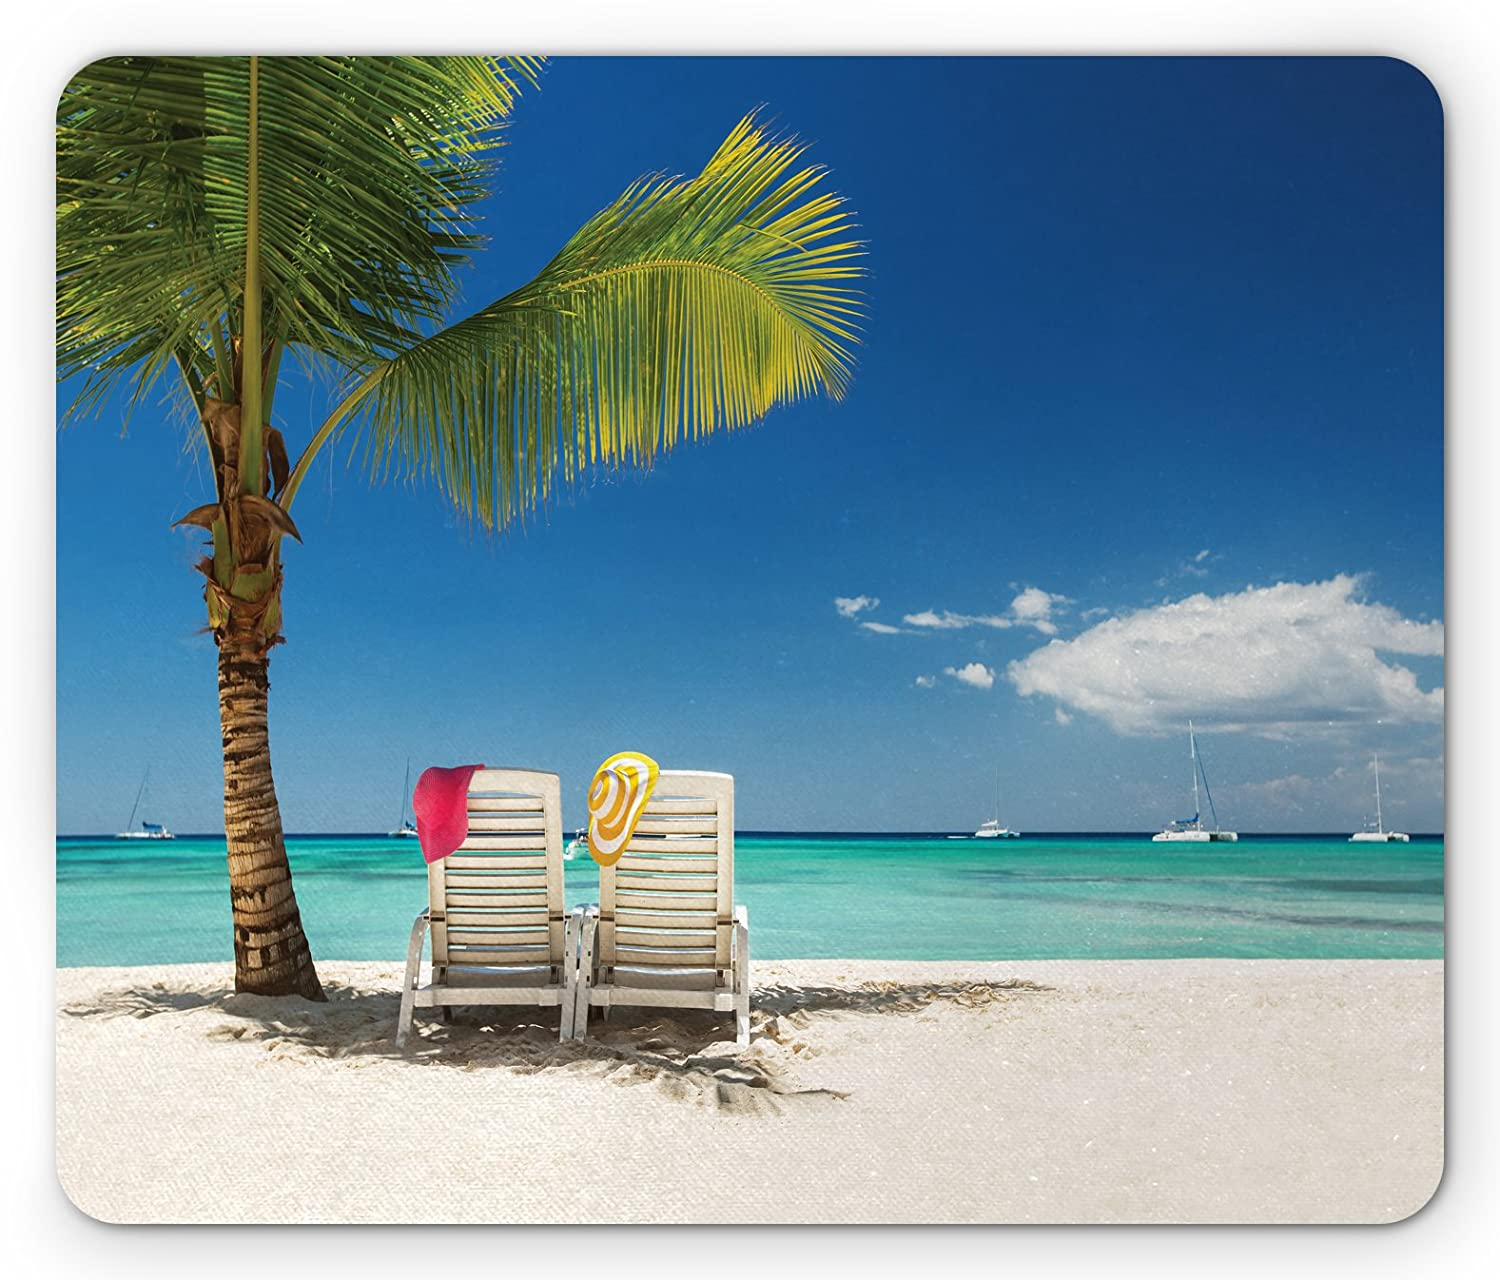 Ambesonne Seaside Mouse Pad, Relaxing Scene on Remote Beach with Palm Tree, Chairs and Boats Panoramic Picture, Standard Size Rectangle Non-Slip Rubber Mousepad, Blue Green